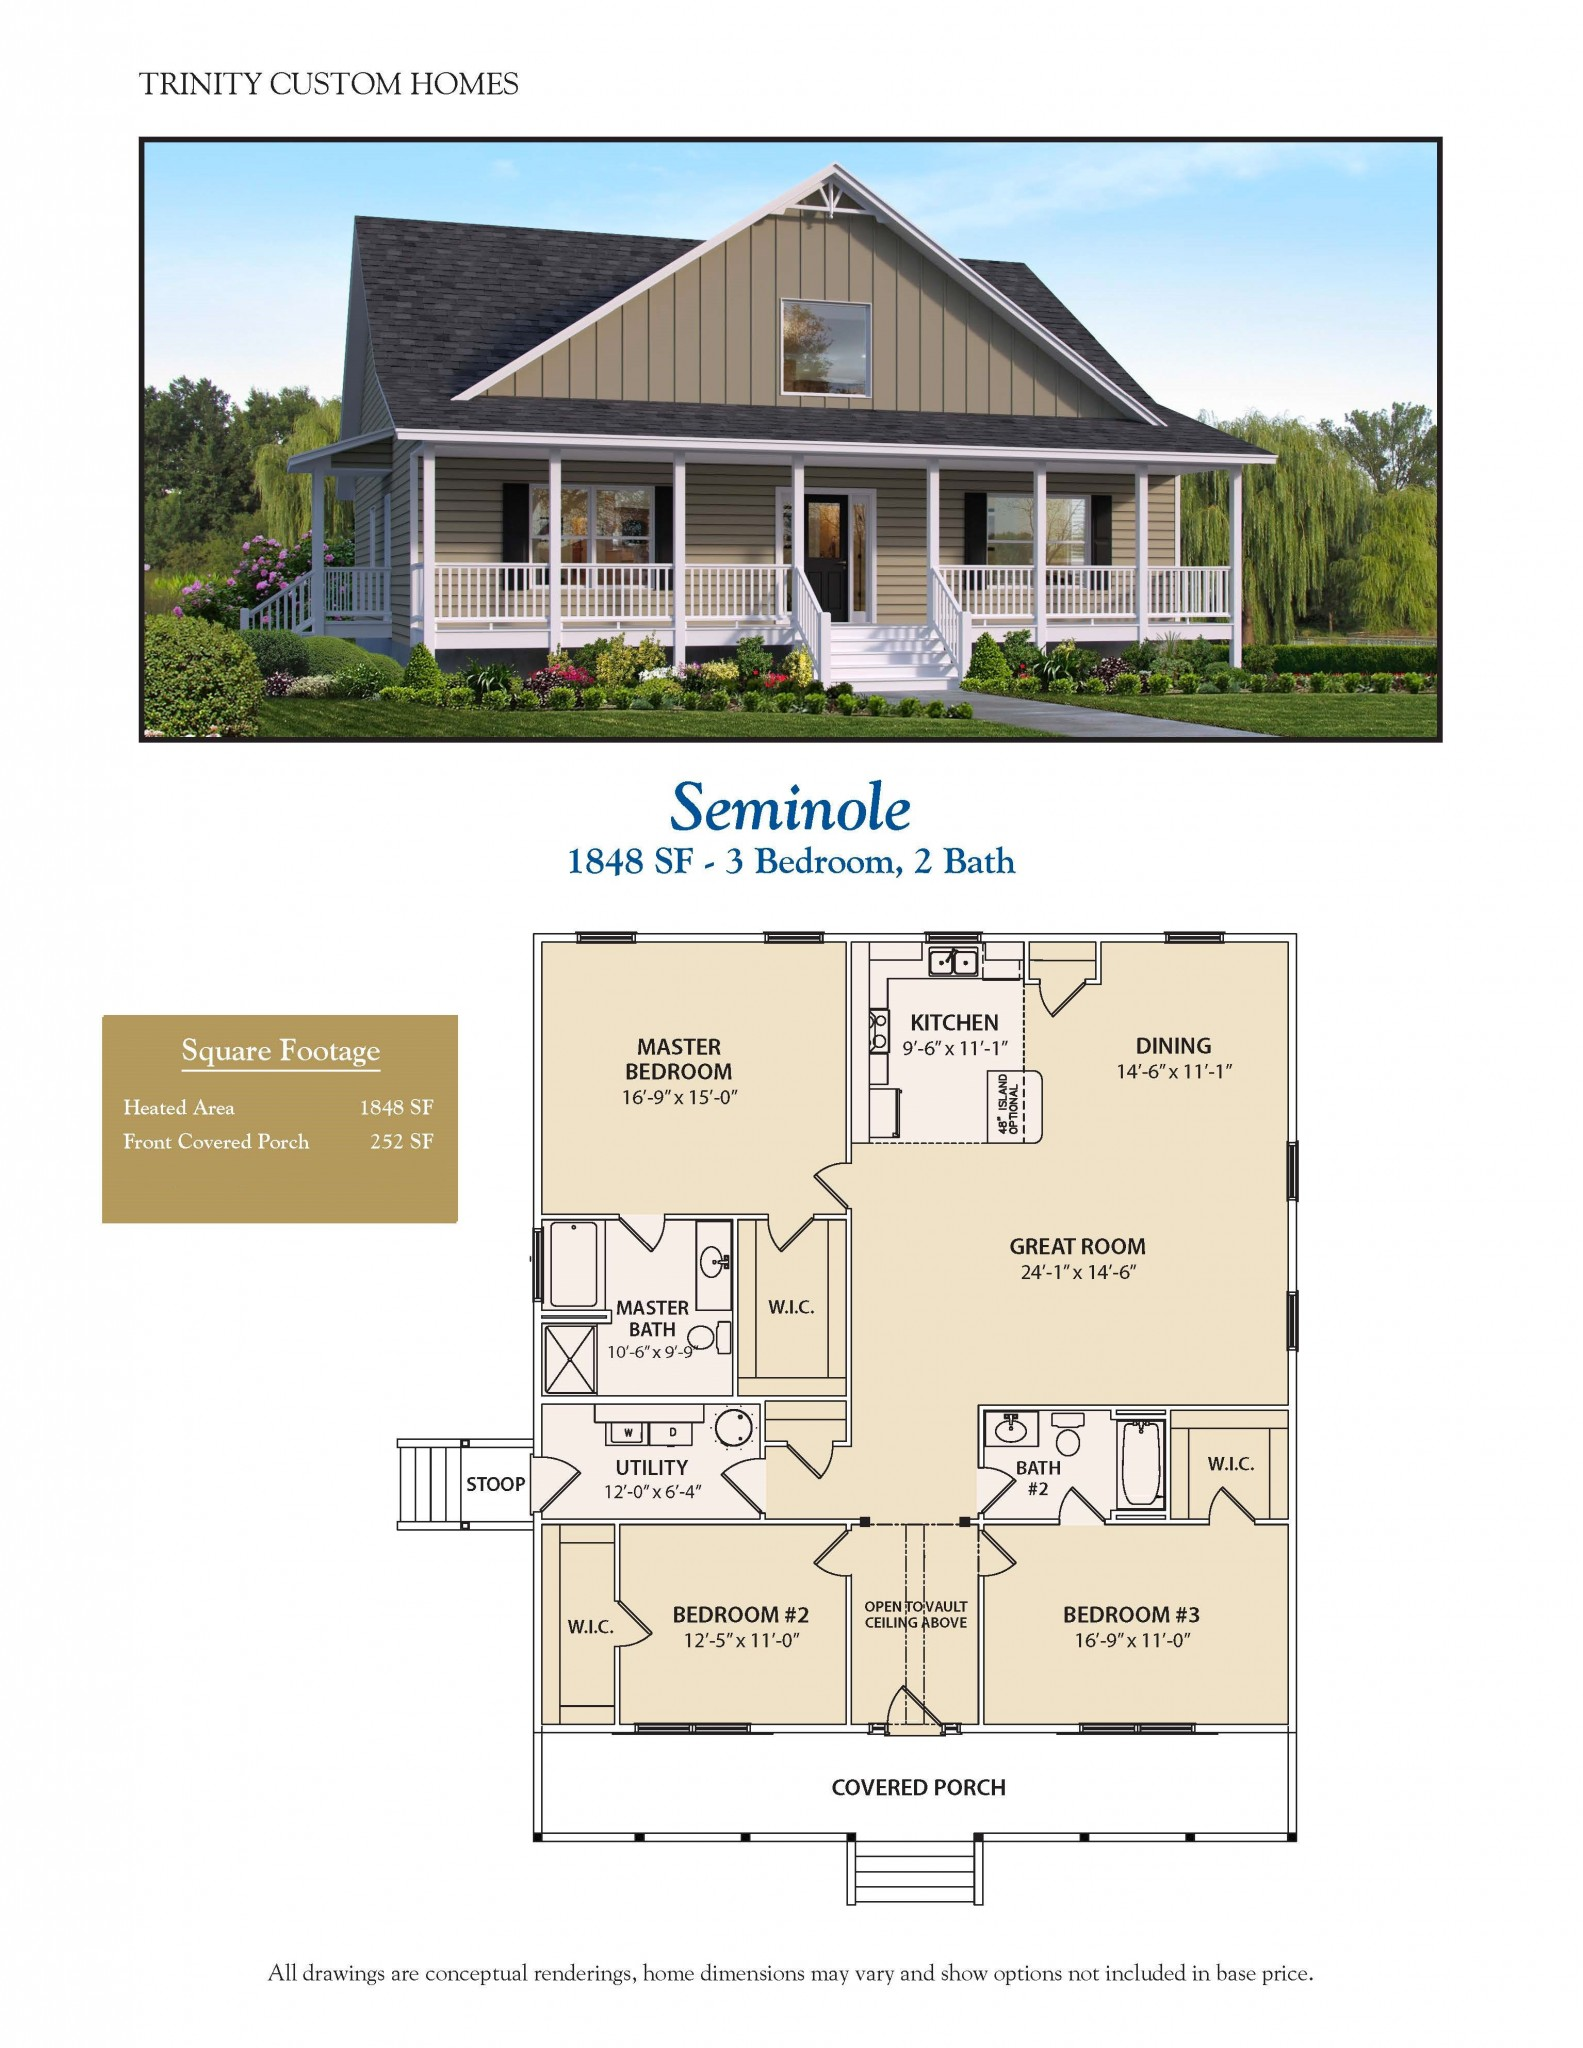 Seminole welcome to trinity custom homes for Trinity house plans